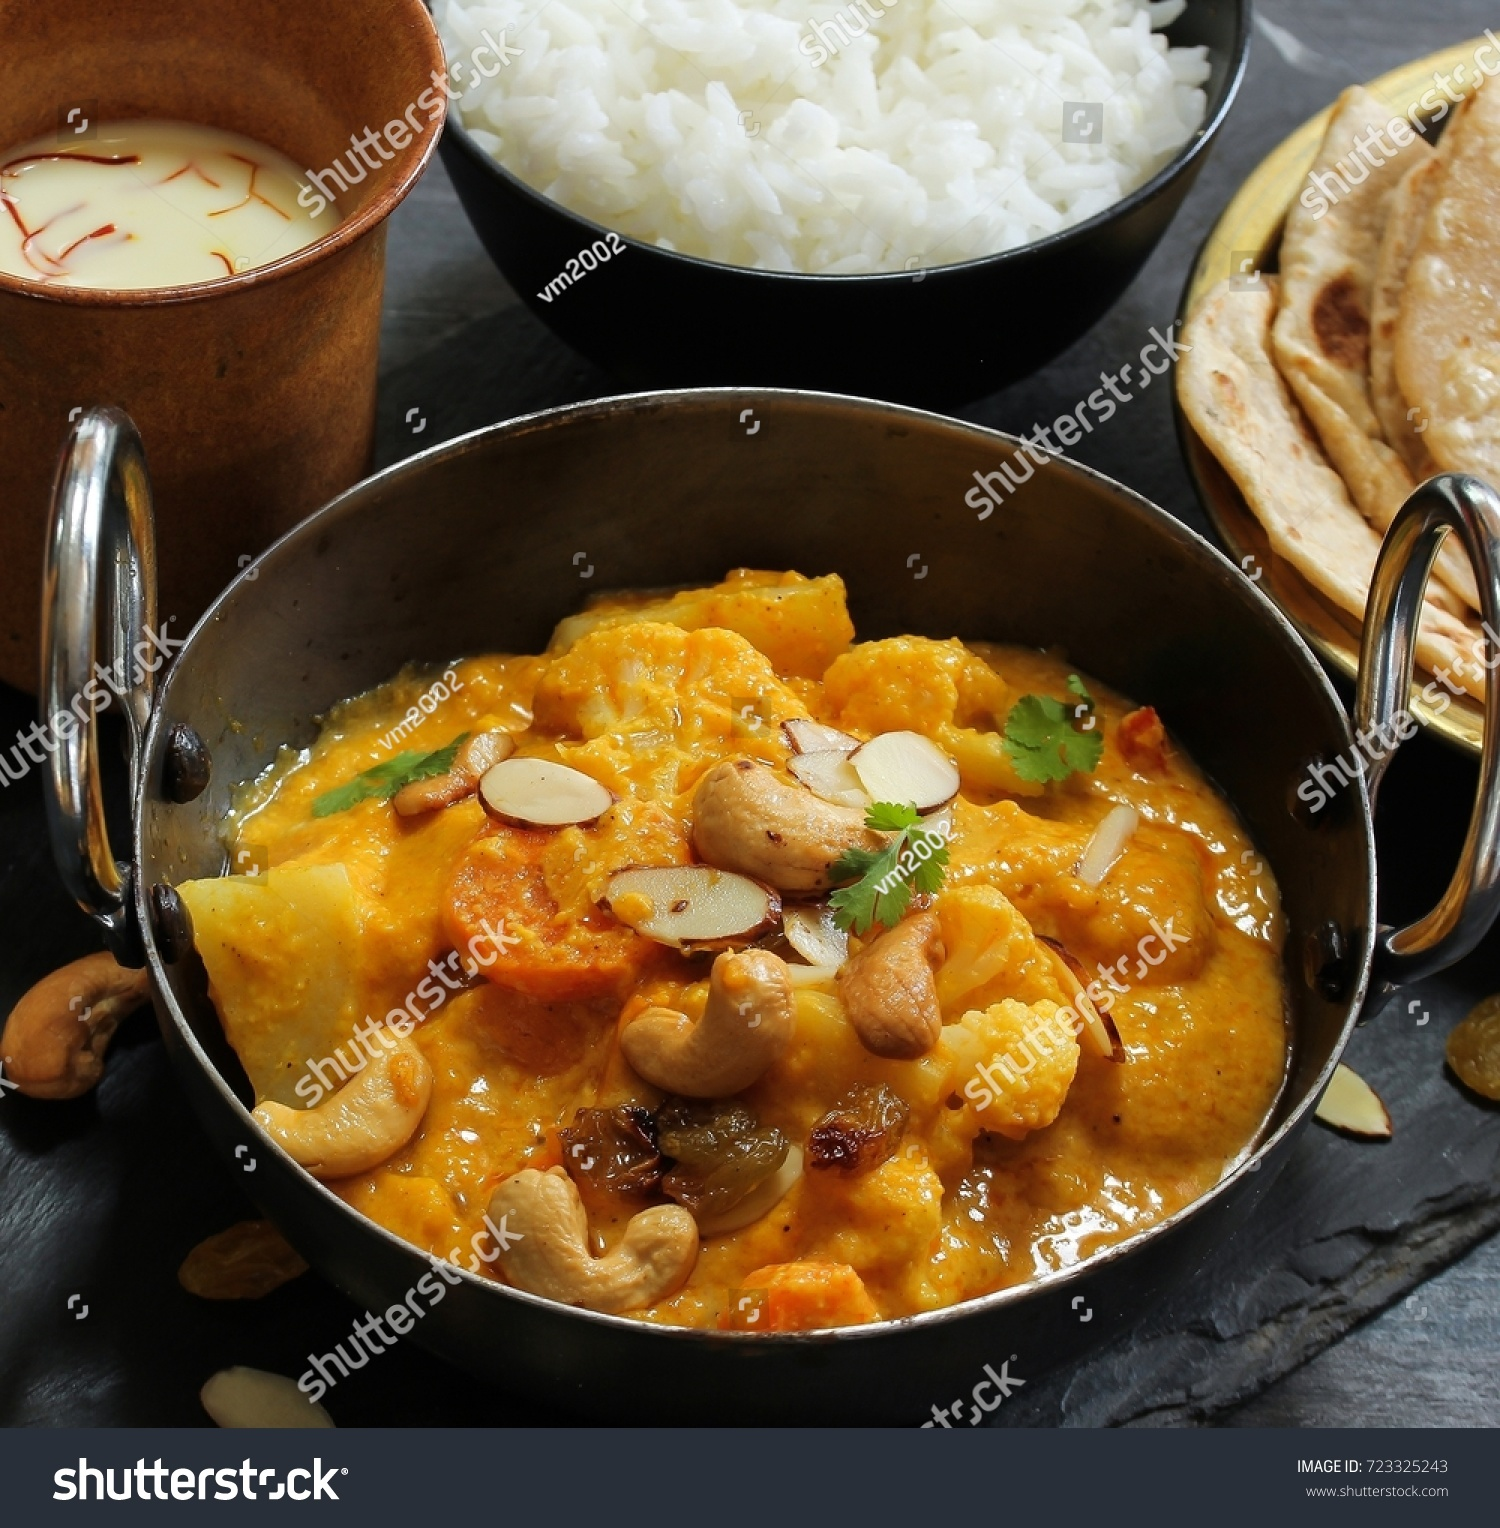 Vegetable navratan korma indian mixed veg stock photo royalty free vegetable or navratan korma indian mixed veg curry served with roti and rice forumfinder Gallery